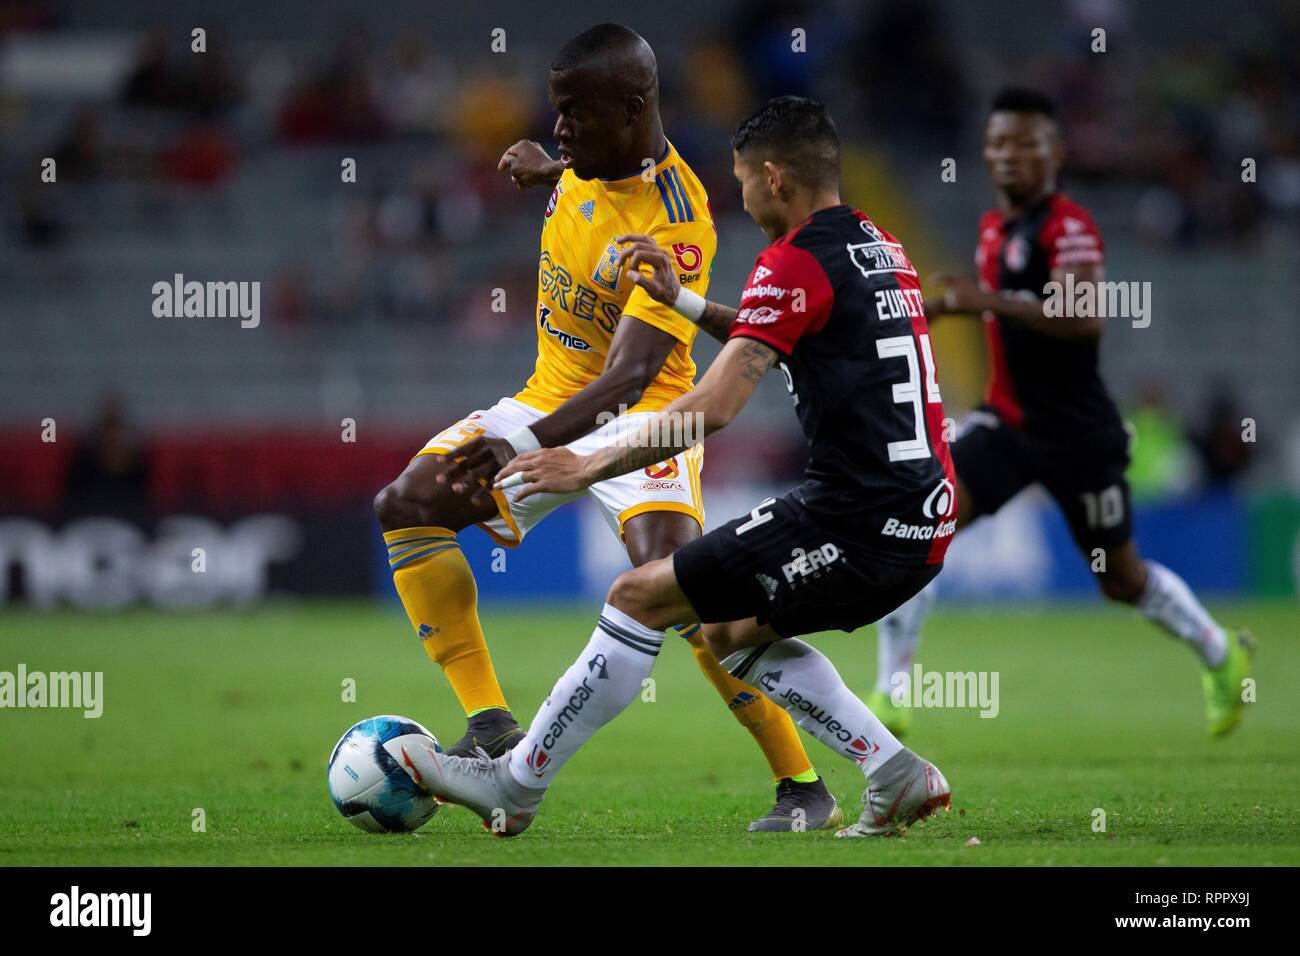 Atlas' Irving Zurita (R) vies for the ball against Tigres' Enner Valencia (L) during a match of the Mexican tournament between Atlas and Tigres, held at the Jalisco, Guadalajara, México, on 22 February 2019. EFE/ Francisco Guasco - Stock Image